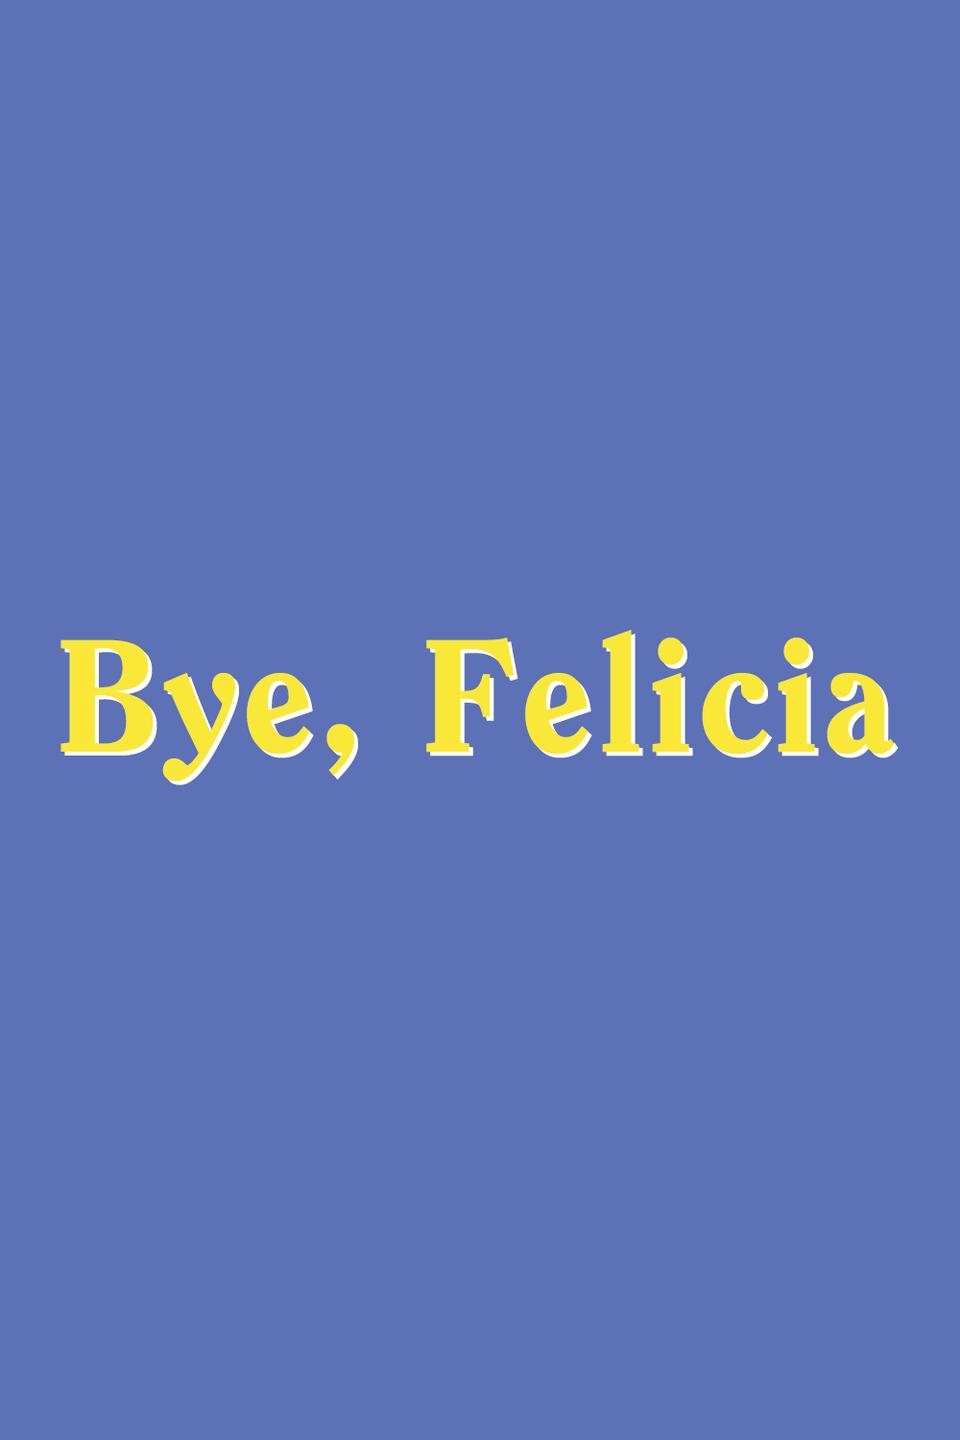 "<p>If you're tired of putting up with someone, tell them, ""Bye, Felicia!"" It's a way of dismissing them or their request. In 1995's <em><a href=""https://www.amazon.com/Friday-Ice-Cube/dp/B0070YR5UW?tag=syn-yahoo-20&ascsubtag=%5Bartid%7C10070.g.36318291%5Bsrc%7Cyahoo-us"" rel=""nofollow noopener"" target=""_blank"" data-ylk=""slk:Friday"" class=""link rapid-noclick-resp"">Friday</a>, </em>Ice Cube used the term <a href=""https://www.youtube.com/watch?time_continue=44&v=G05u7ihoYQA"" rel=""nofollow noopener"" target=""_blank"" data-ylk=""slk:in a scene"" class=""link rapid-noclick-resp"">in a scene</a> during which his character responds to Felicia's (Angela Means-Kaaya) unapproved request to borrow Smokey's (Chris Tucker) car.</p>"